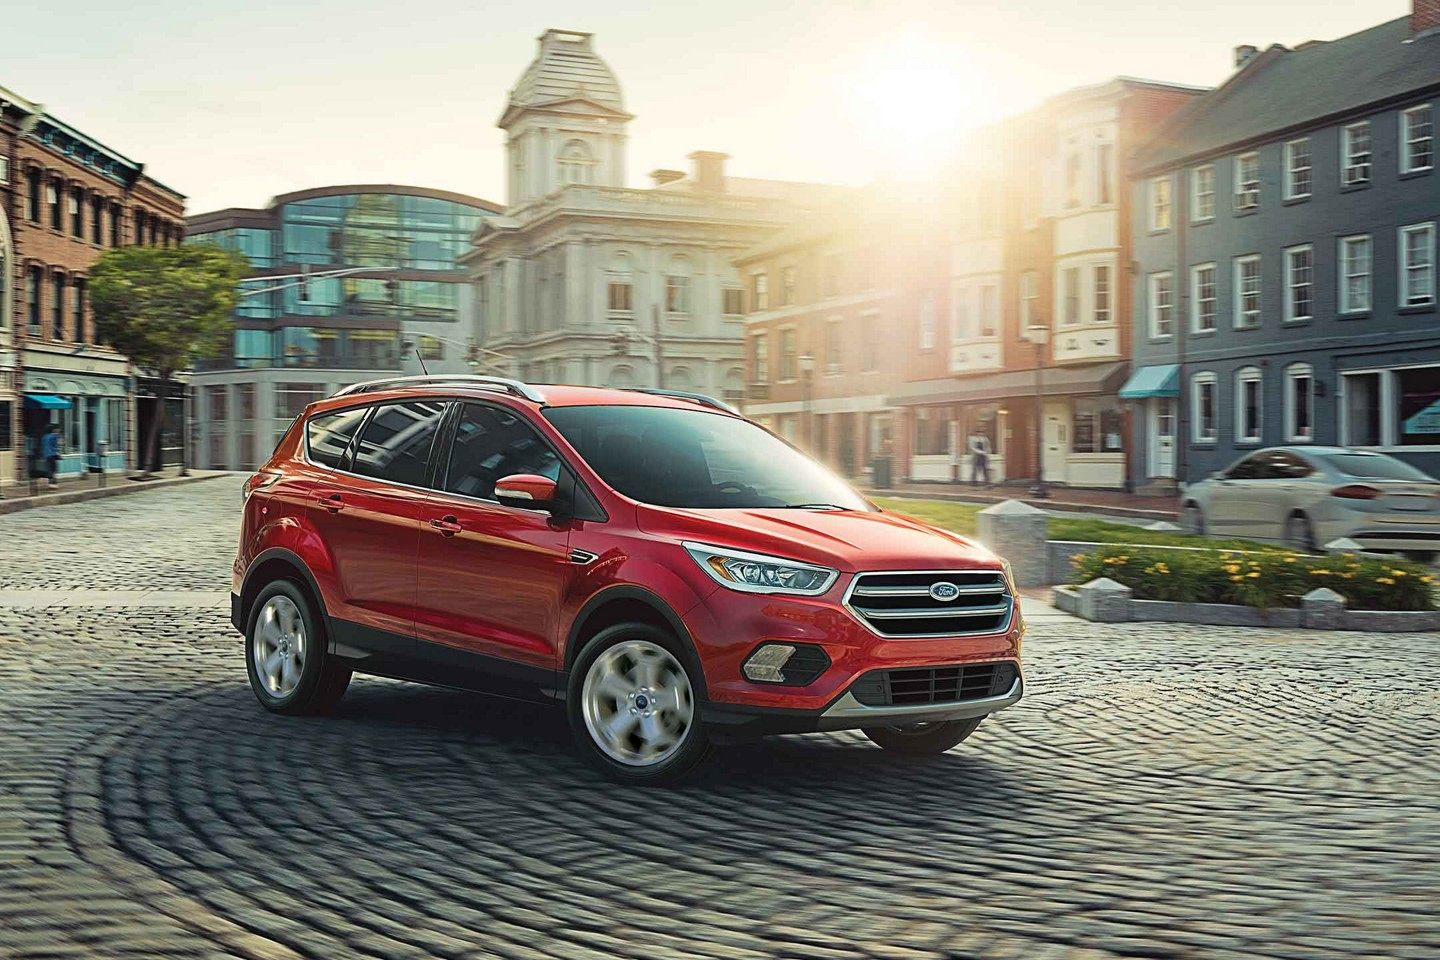 2019 Ford Escape Elkhart, IN